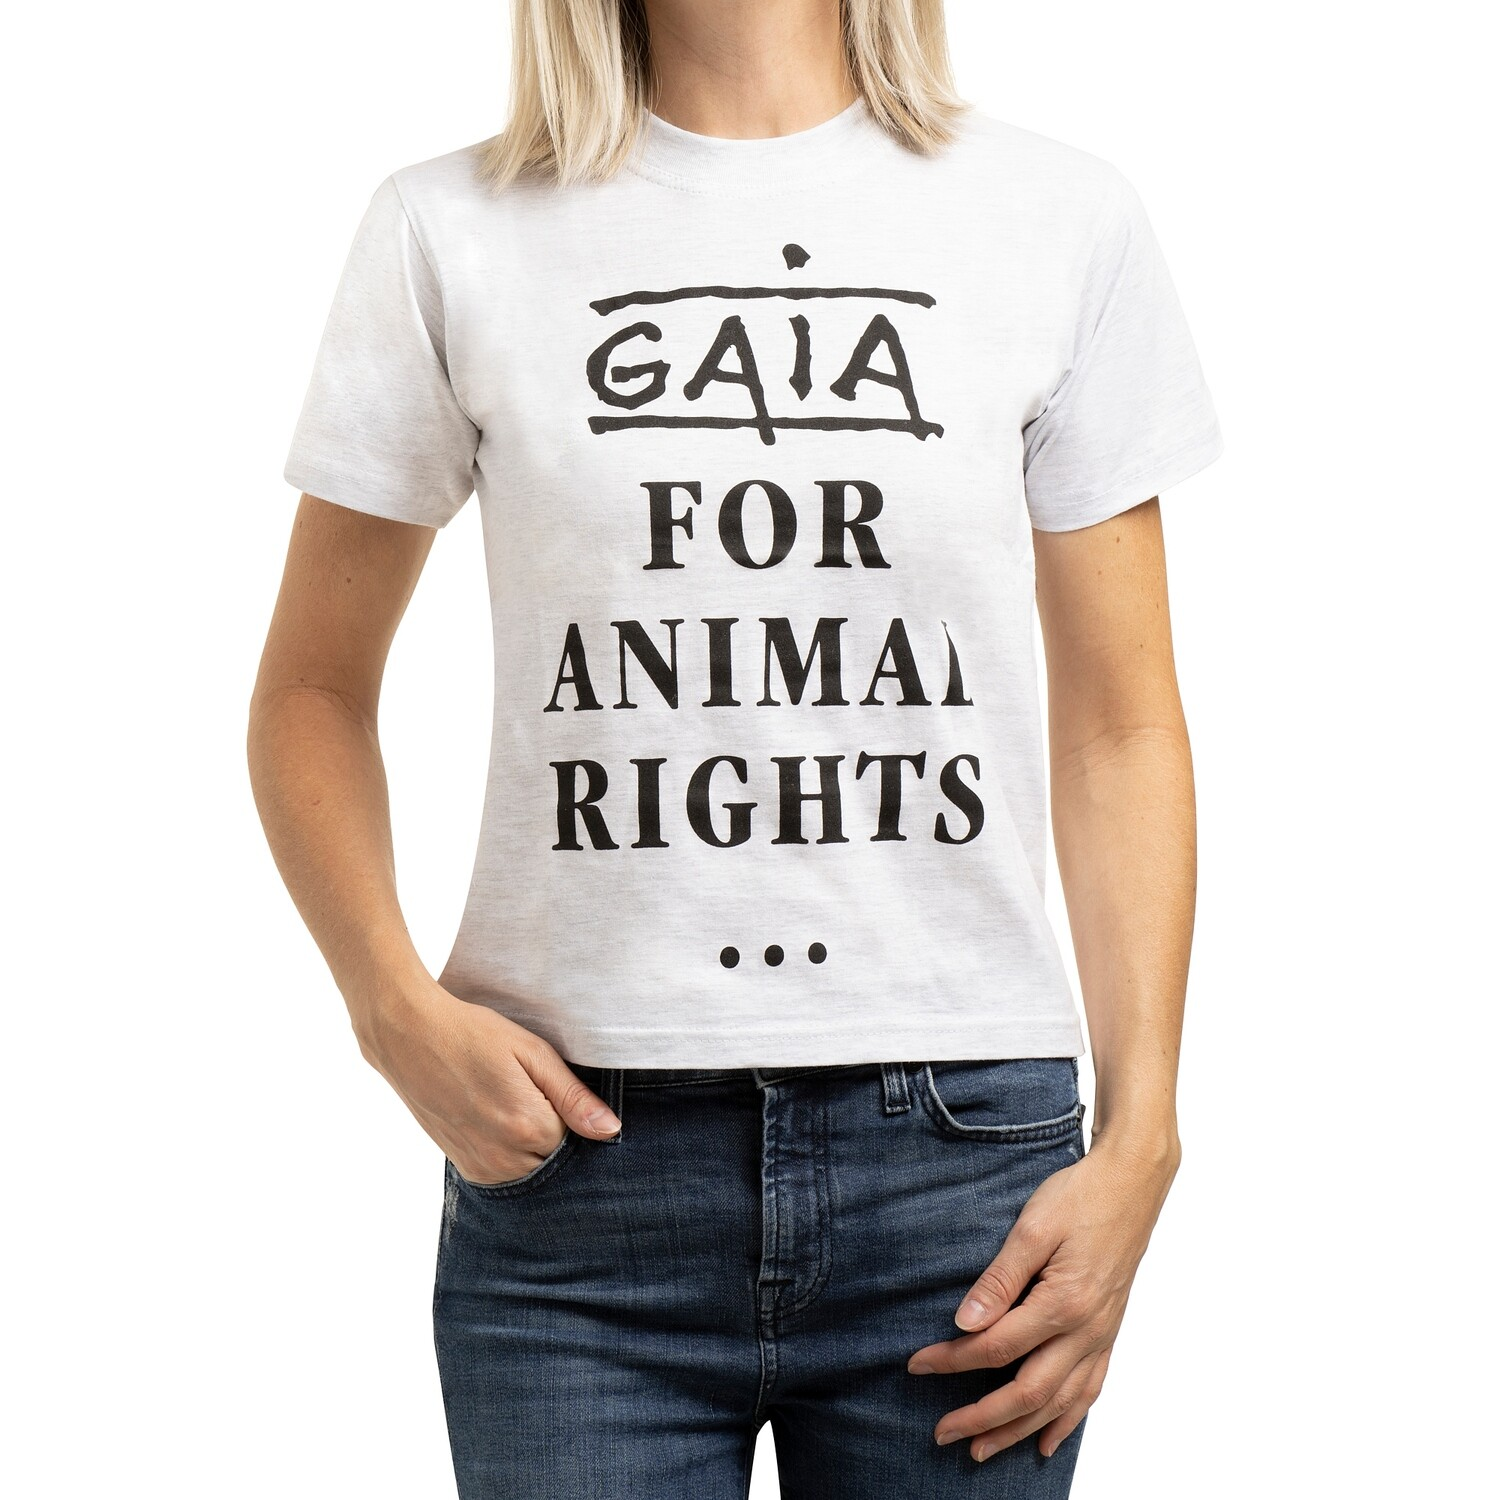 t-shirt 'GAIA - For animal rights' (unisex)